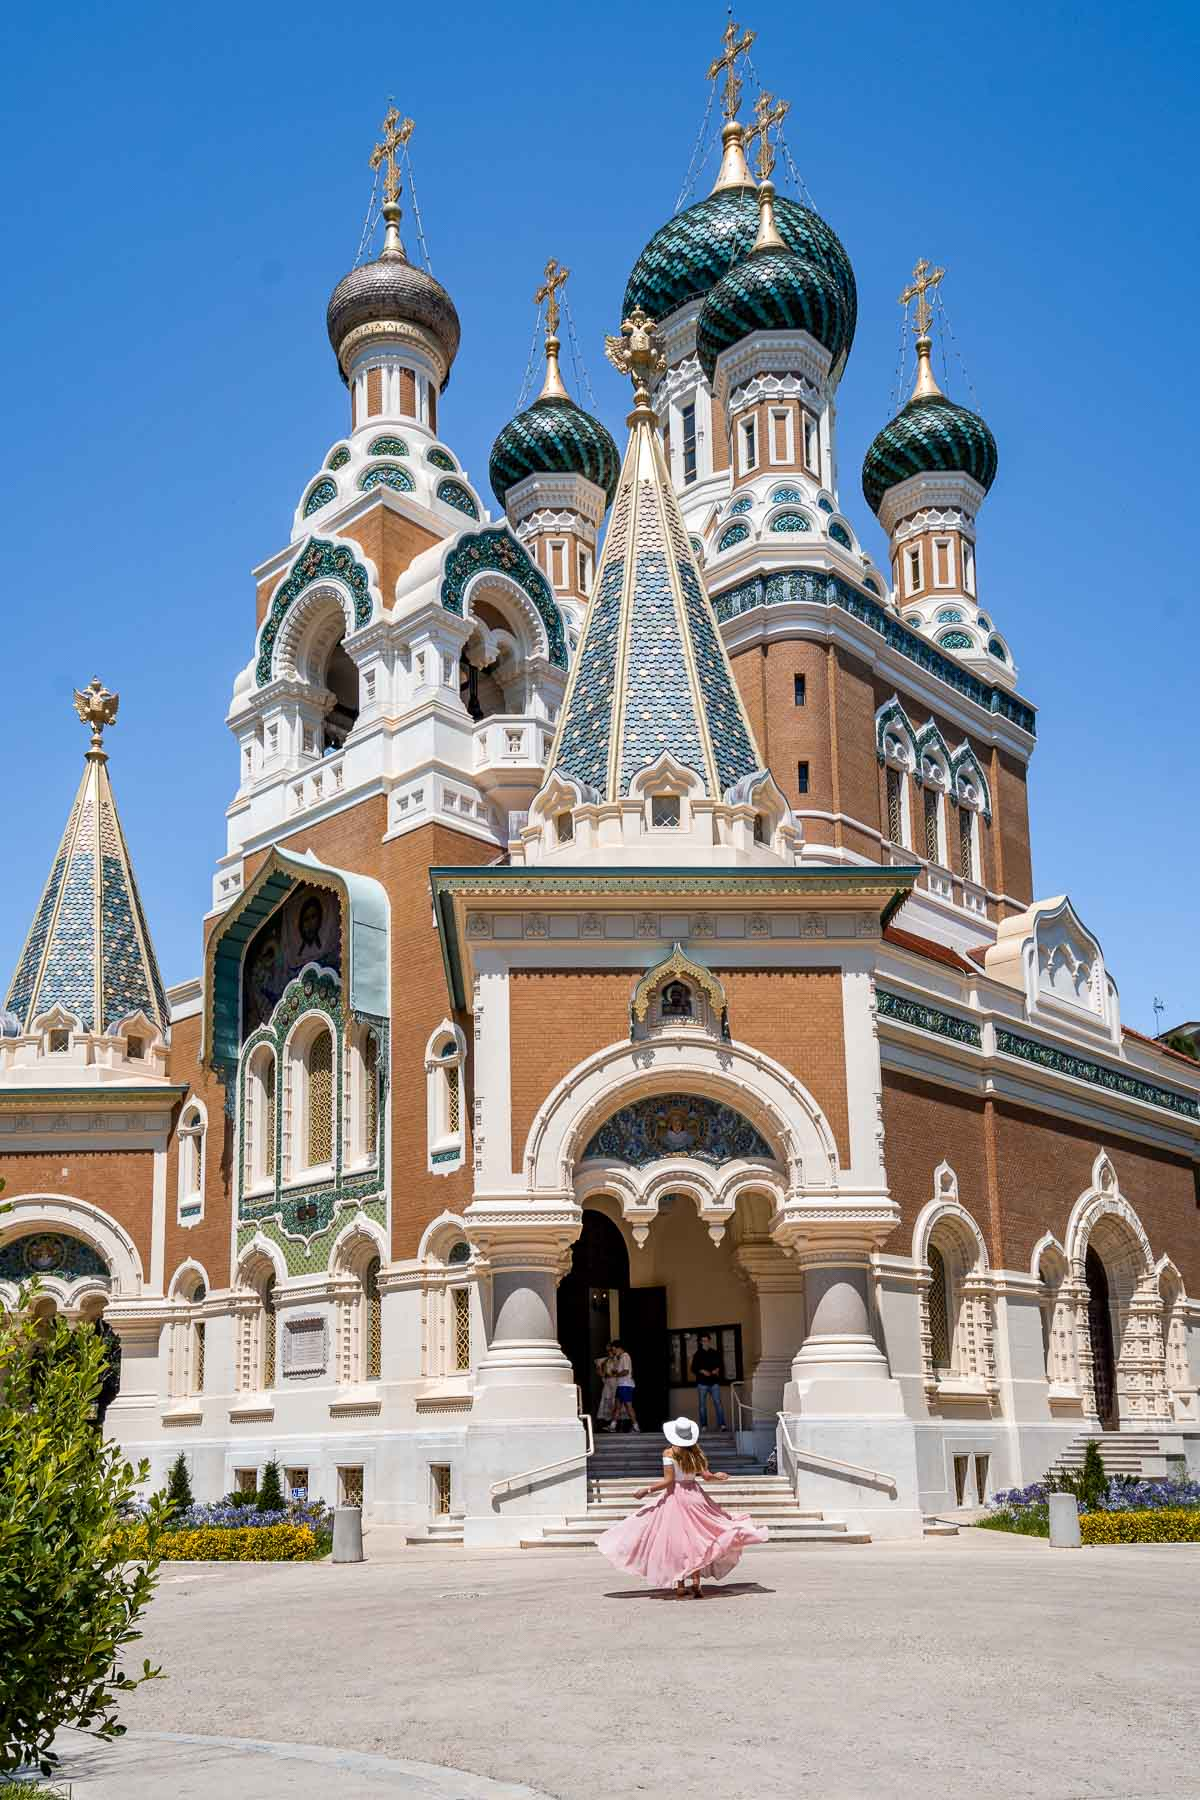 Girl in a pink skirt twirling in front of the St. Nicholas Russian Orthodox Cathedral in Nice, France